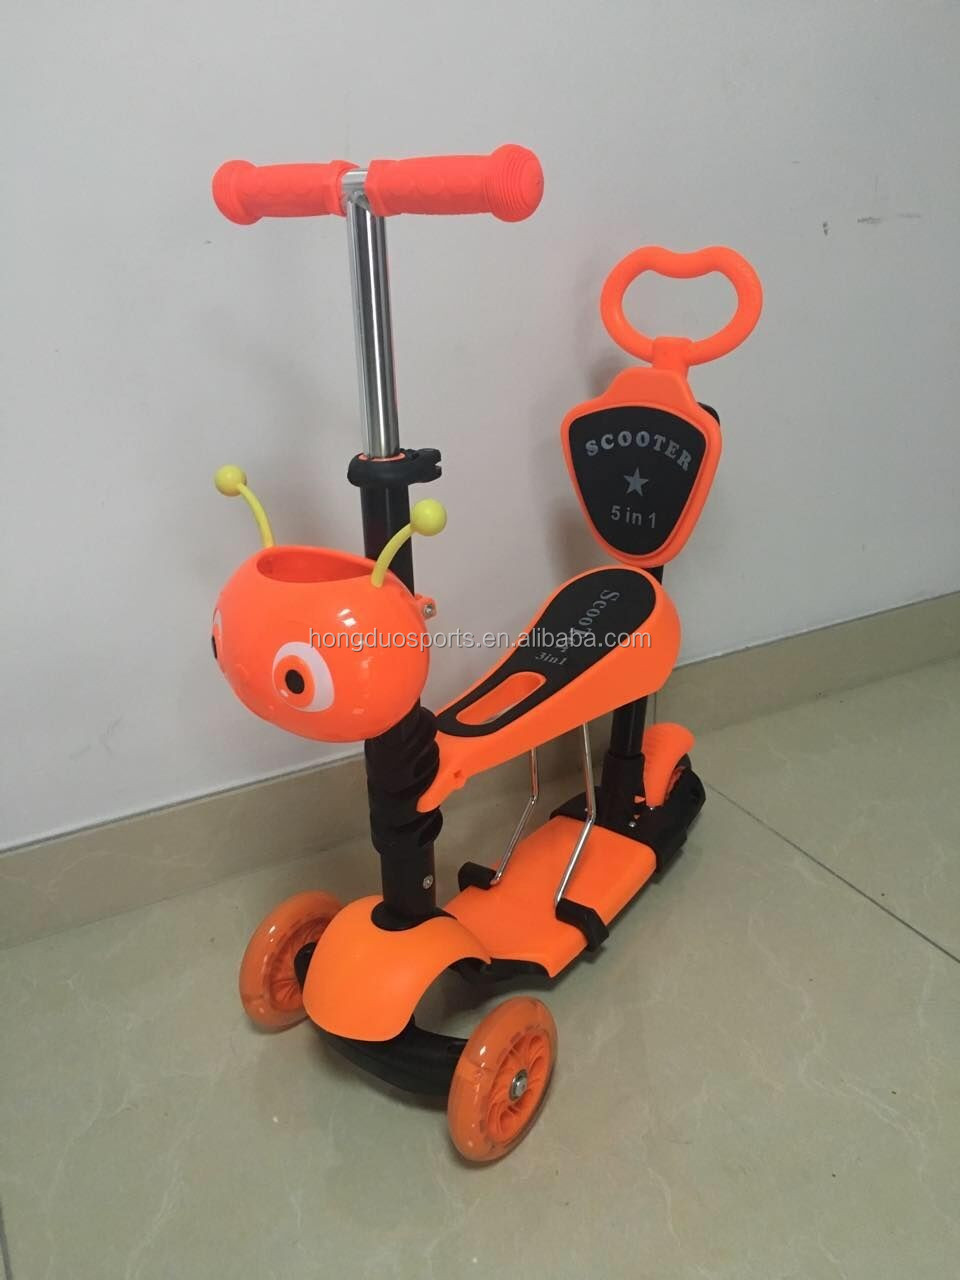 New design baby seat kick scooter with Mom push handle